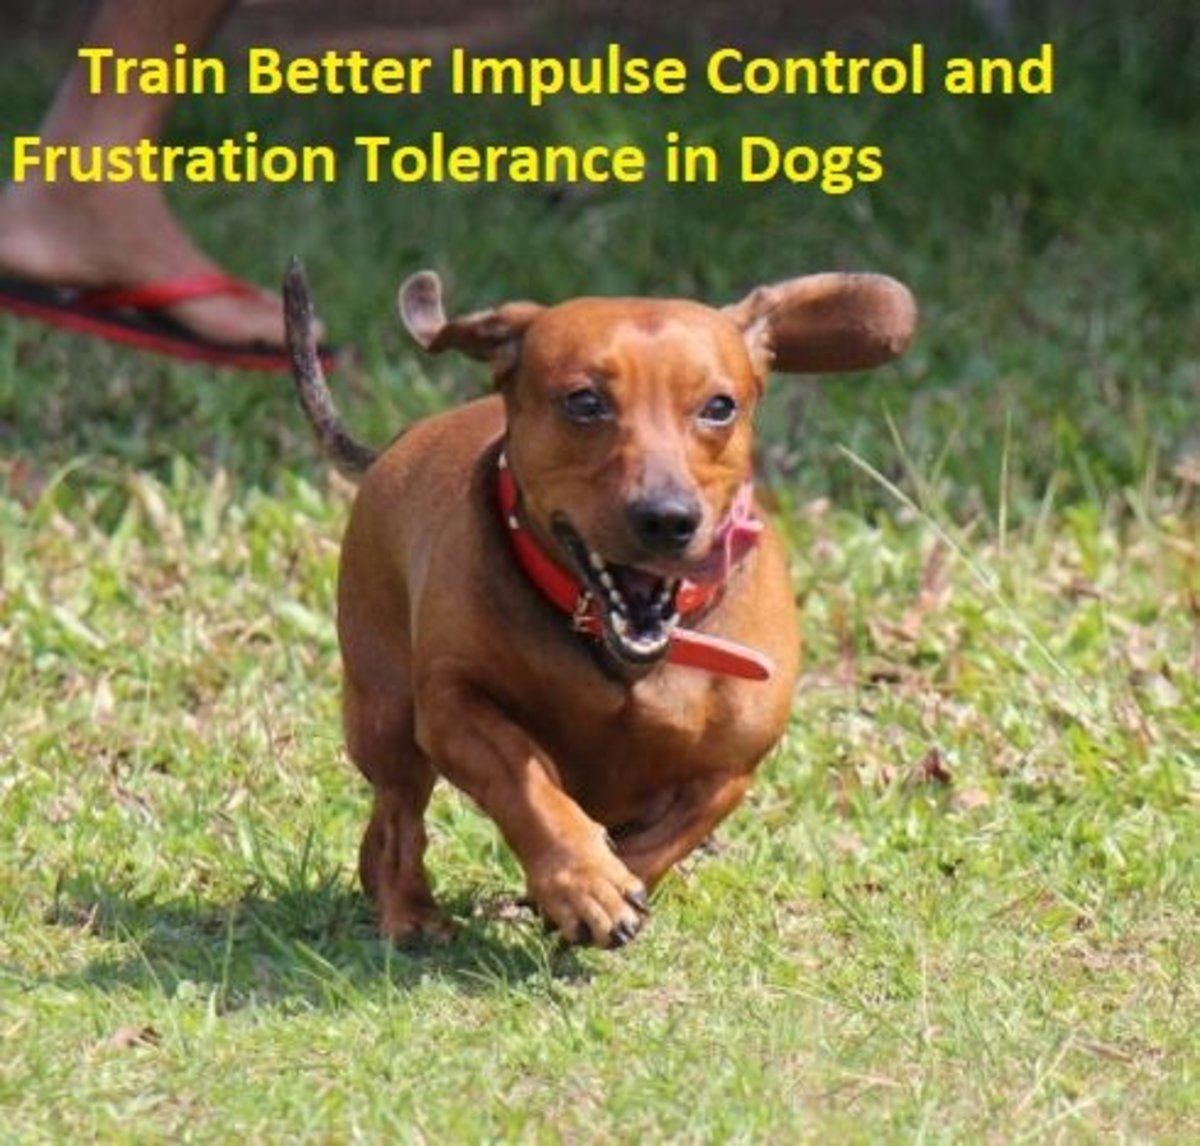 Secrets to Training Dogs Impulse Control and Frustration Tolerance